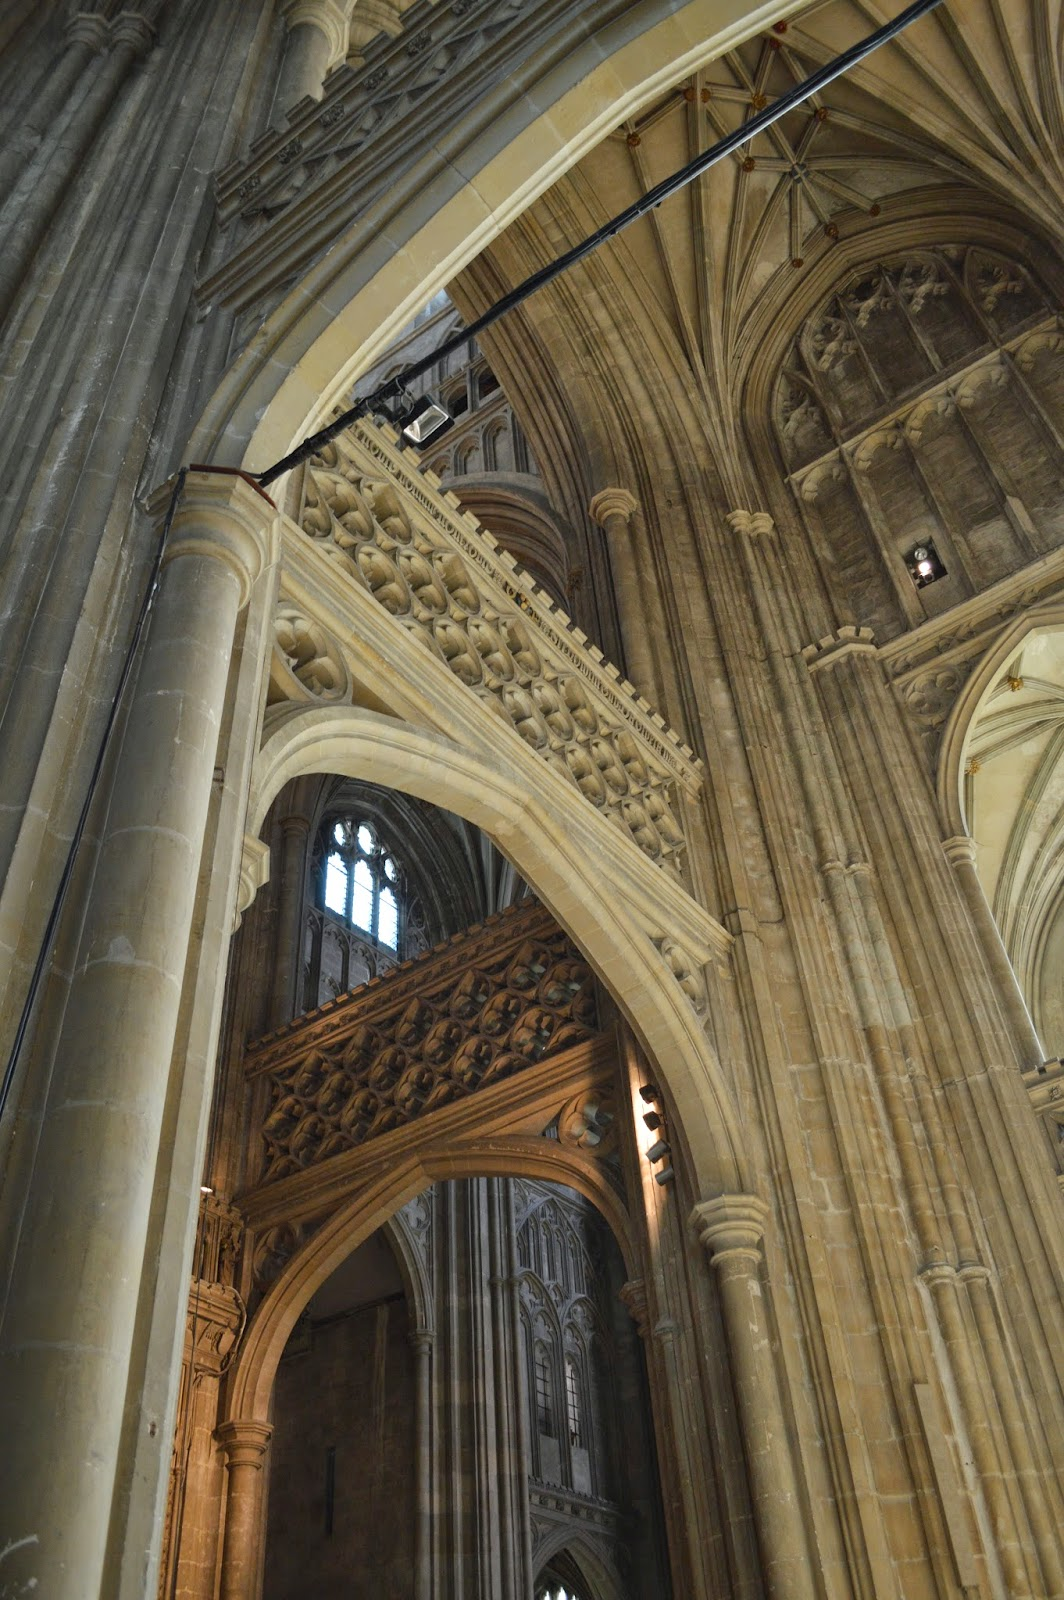 royal burial, Canterbury Cathedral, medieval, church, visit, Thomas Becket, inside, architecture, history, historical, old, large, impressive, Henry II, pilgrimage, arch, pillars, photo, photograph, day trip,  UK, England